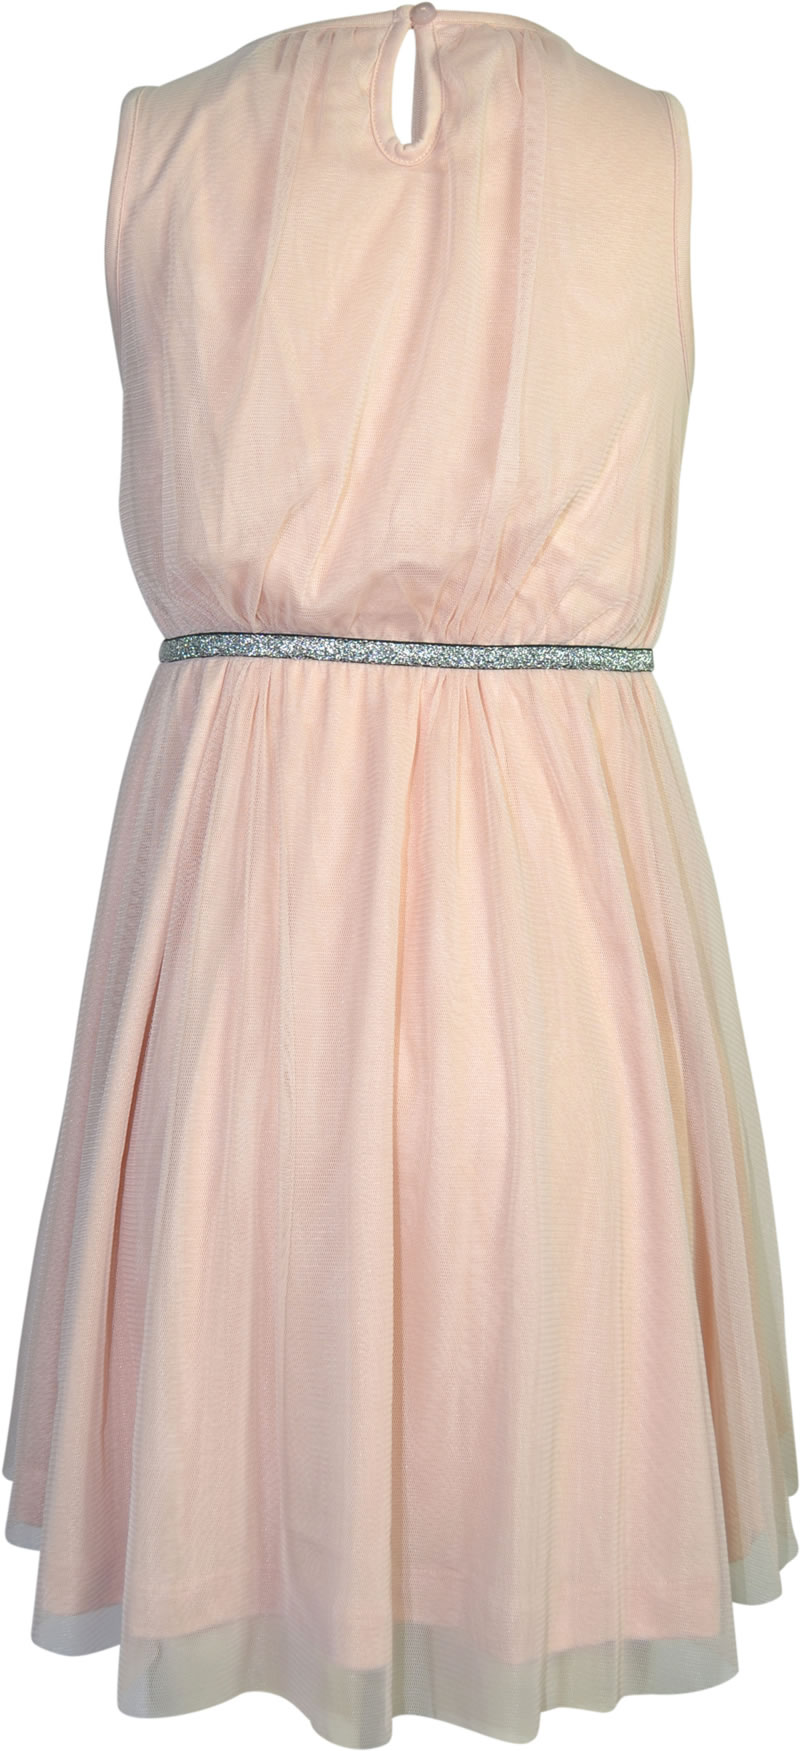 Online Dress Papiton Little Lpfiona Cameo Rose 17071391 At Pieces 4n6qwfP